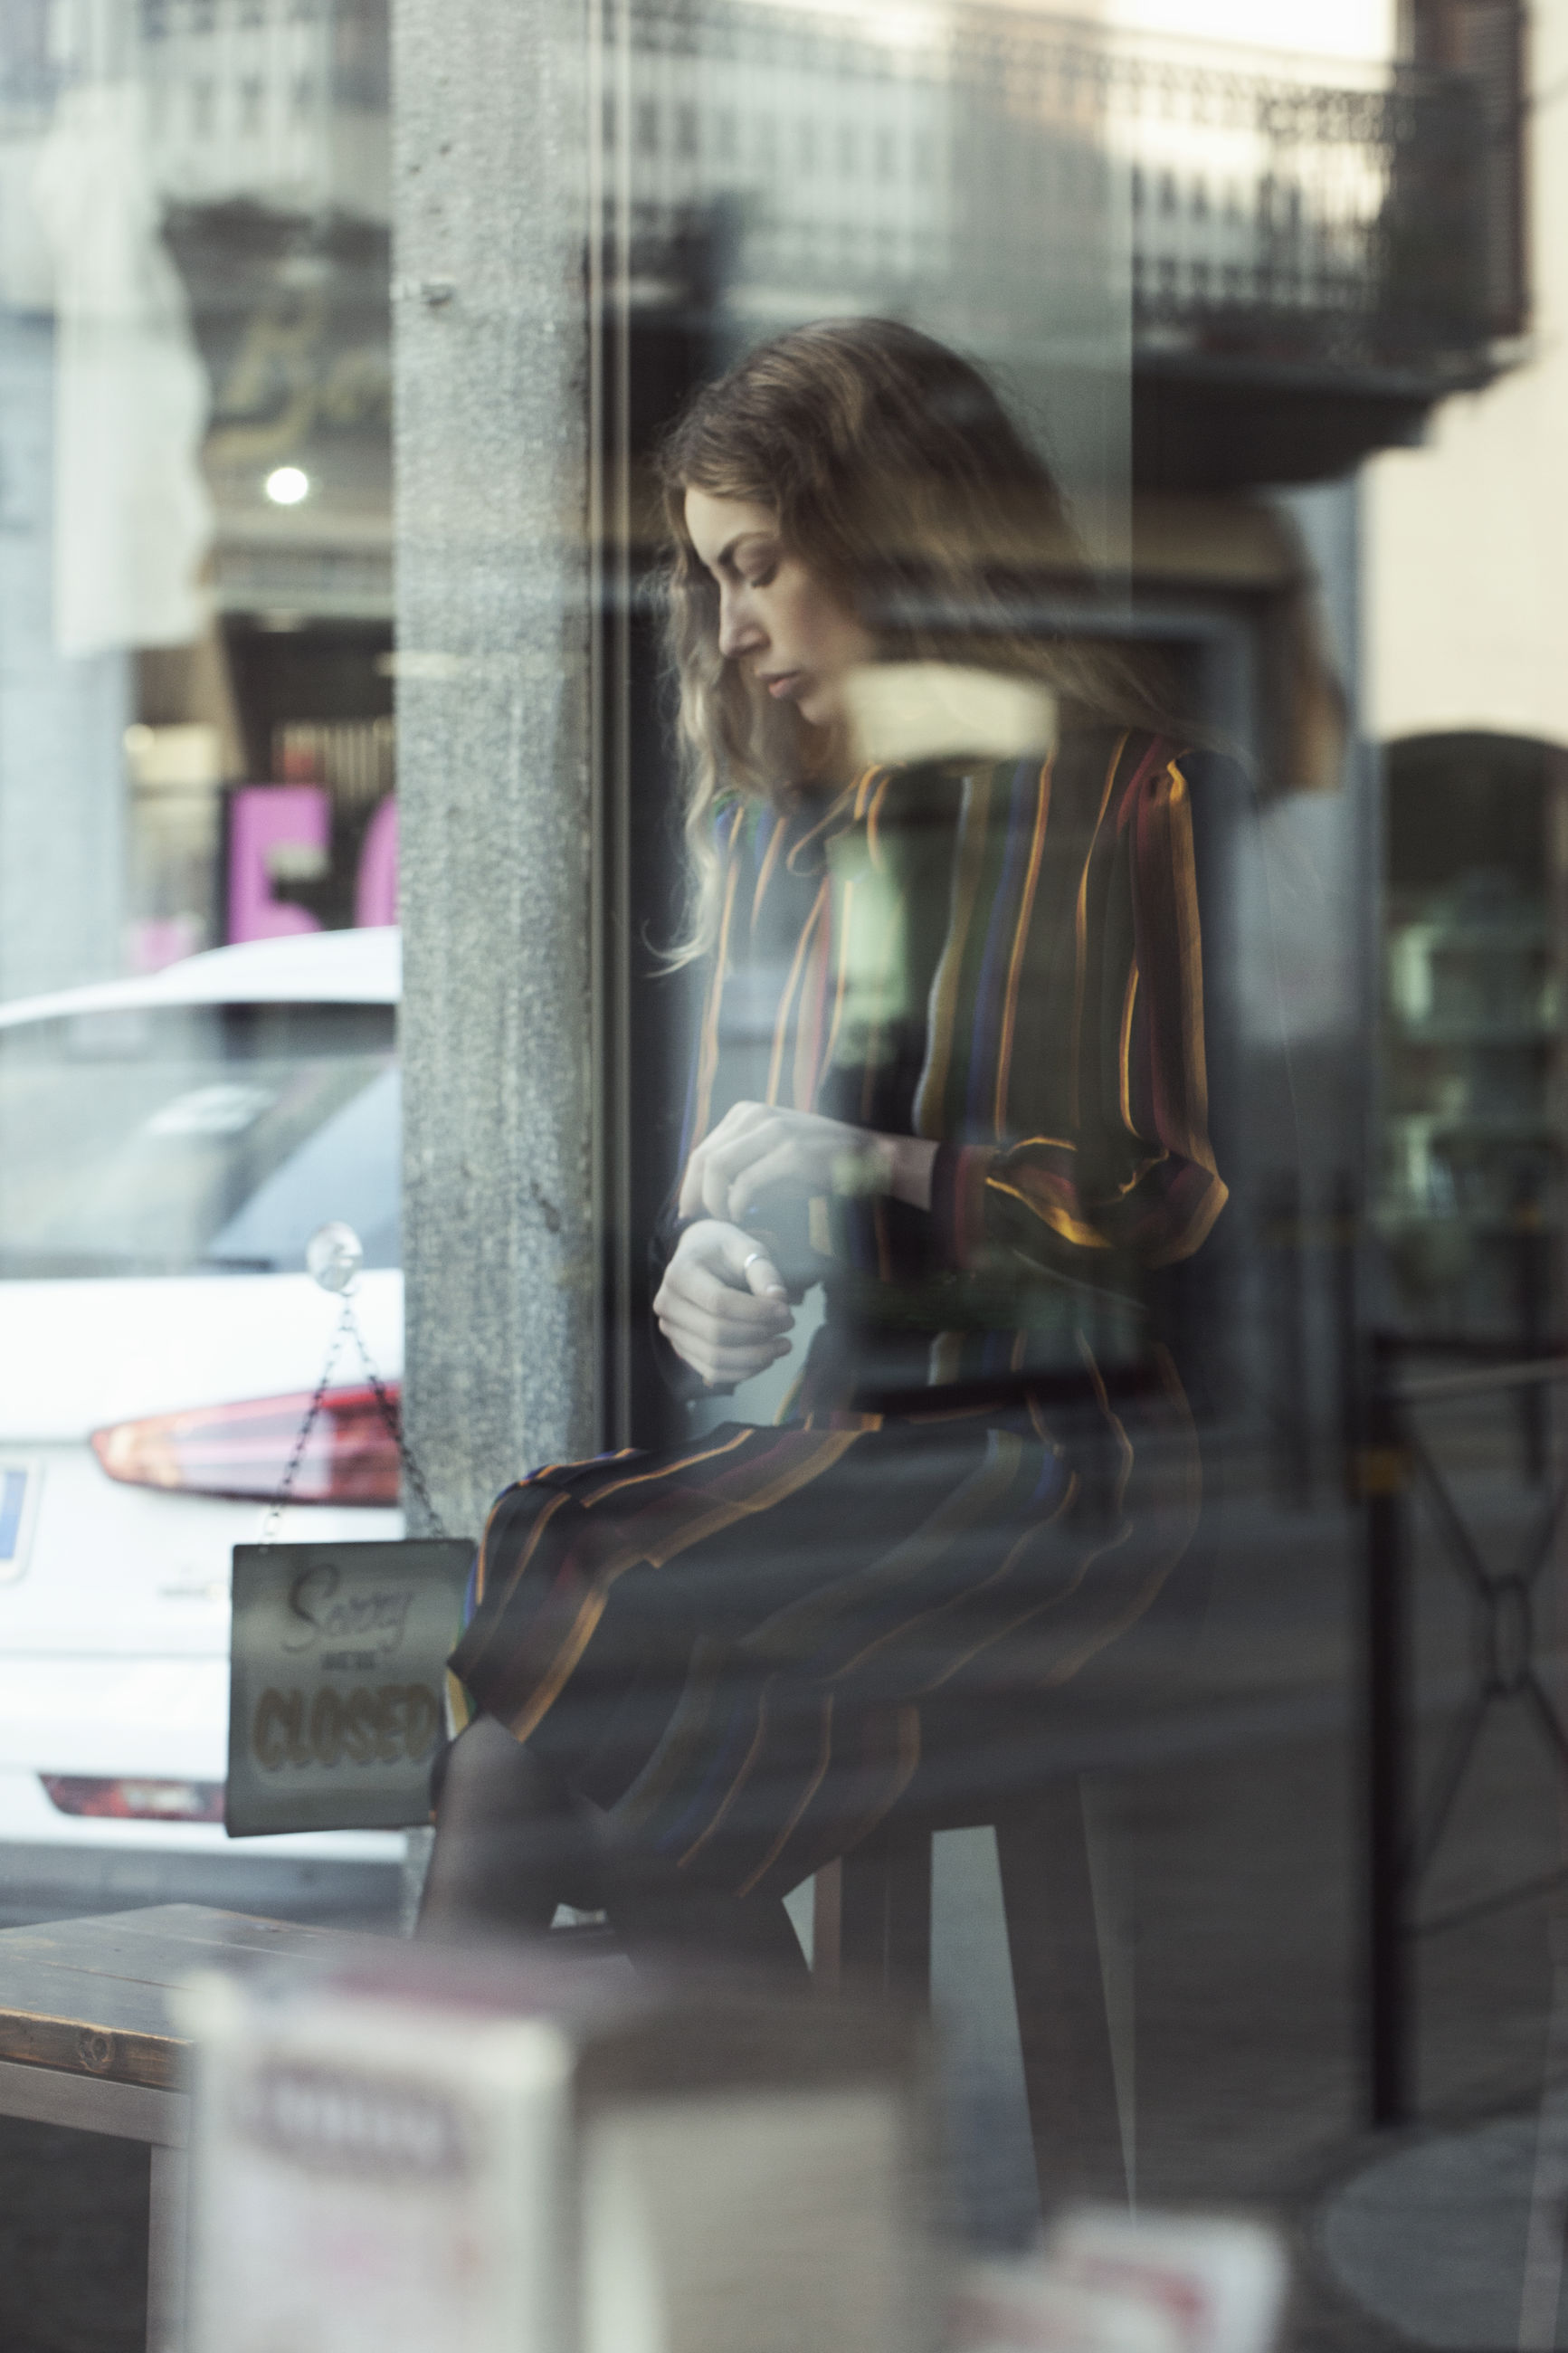 reflection, one person, beautiful woman, only women, one woman only, window, fashion, business, store, store window, beauty, business finance and industry, leisure activity, people, indoors, mannequin, women, adults only, adult, one young woman only, young adult, day